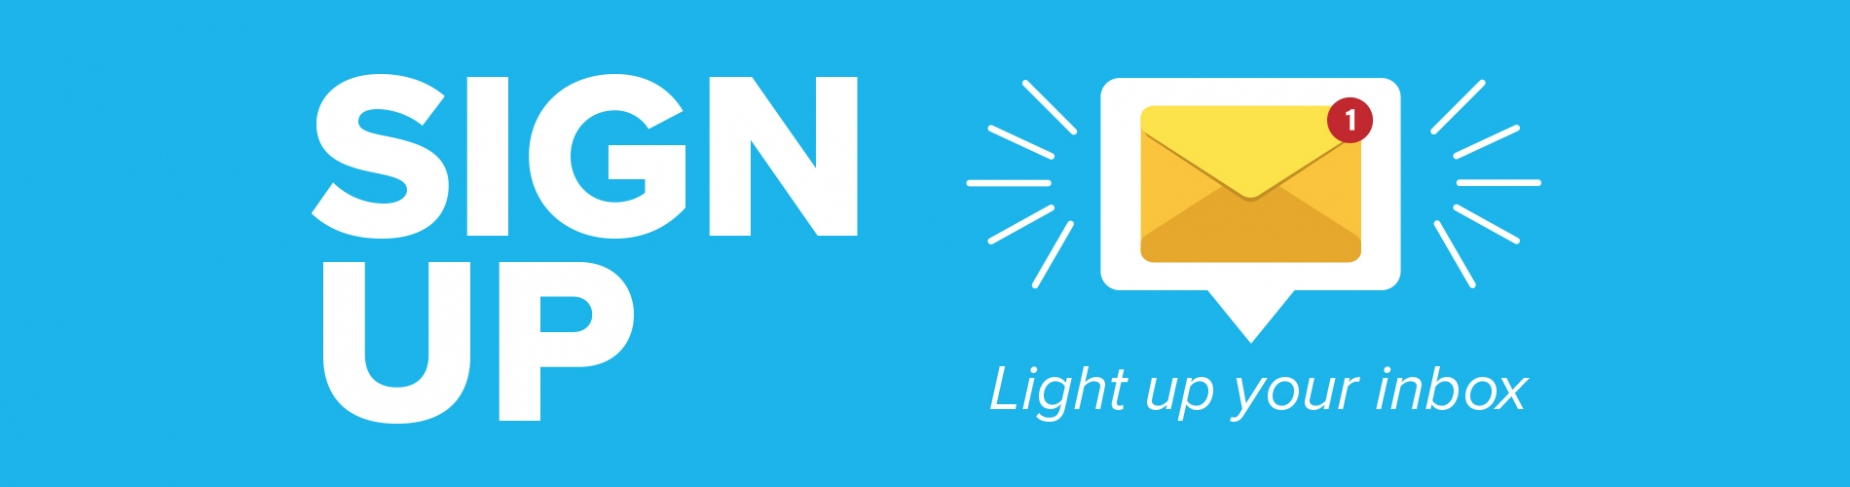 Sign up - Light up your inbox